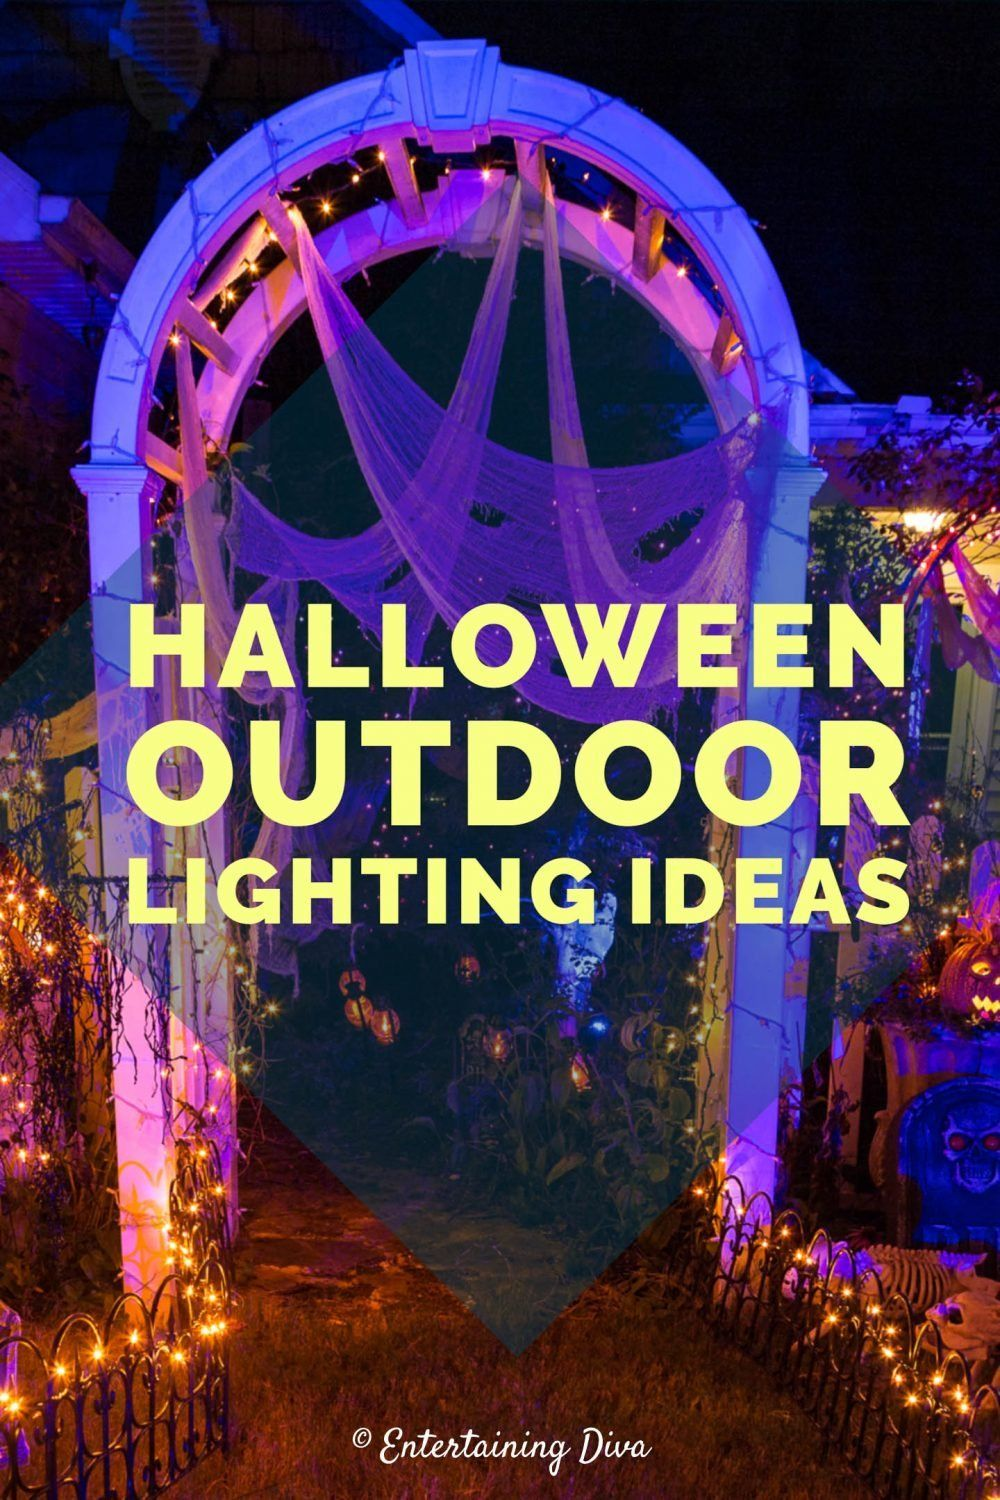 Halloween Outdoor Lighting Ideas 21 Spooky Ways To Light Your Yard Entertaining Diva From House To Home In 2020 Outdoor Halloween Halloween Lighting Outdoor Halloween Lights